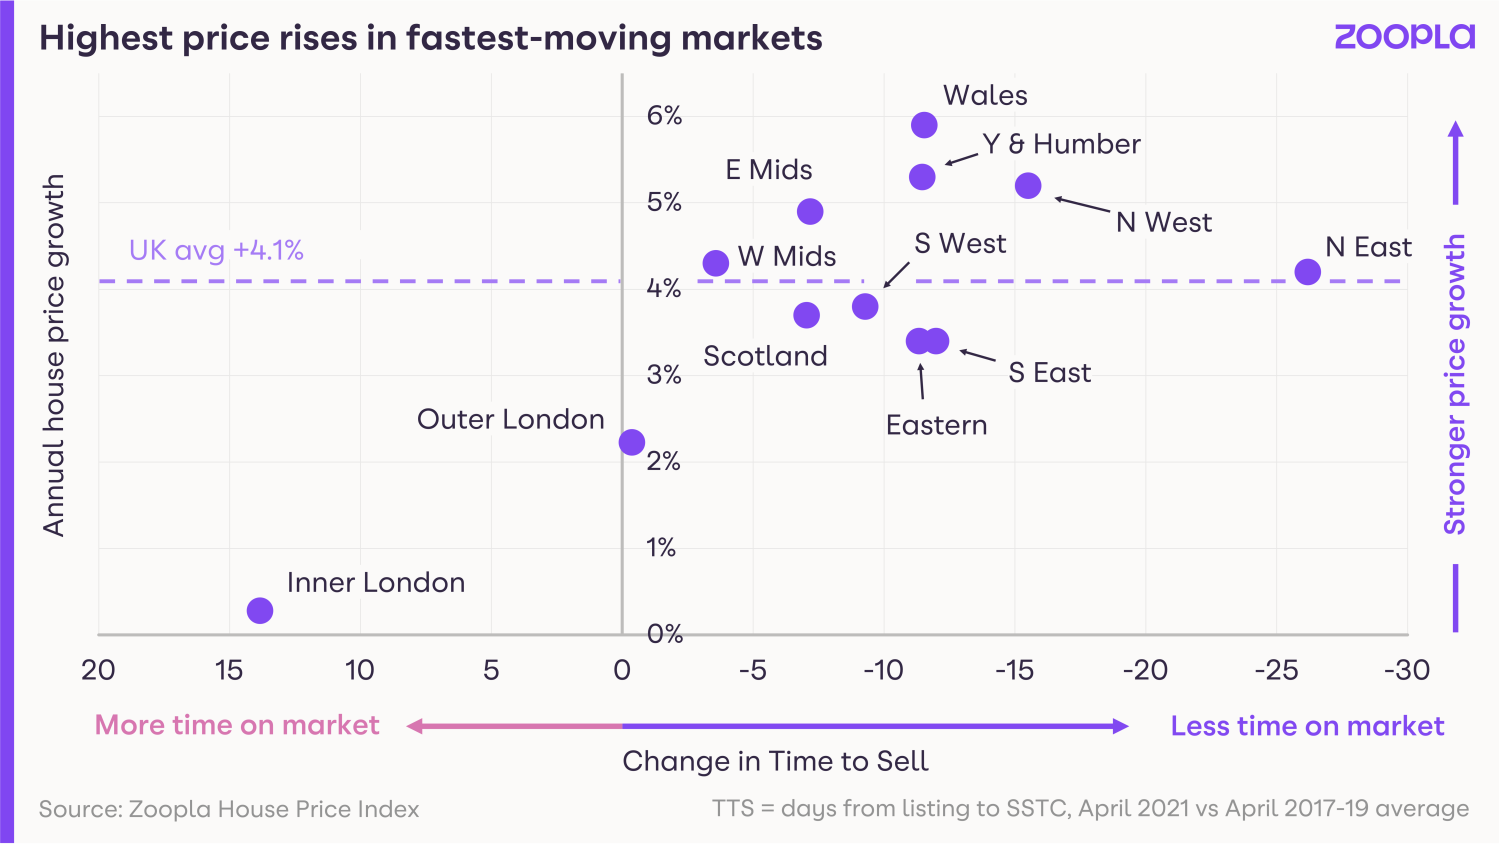 Graph illustrating that the highest price rises are found in the fastest-moving housing markets